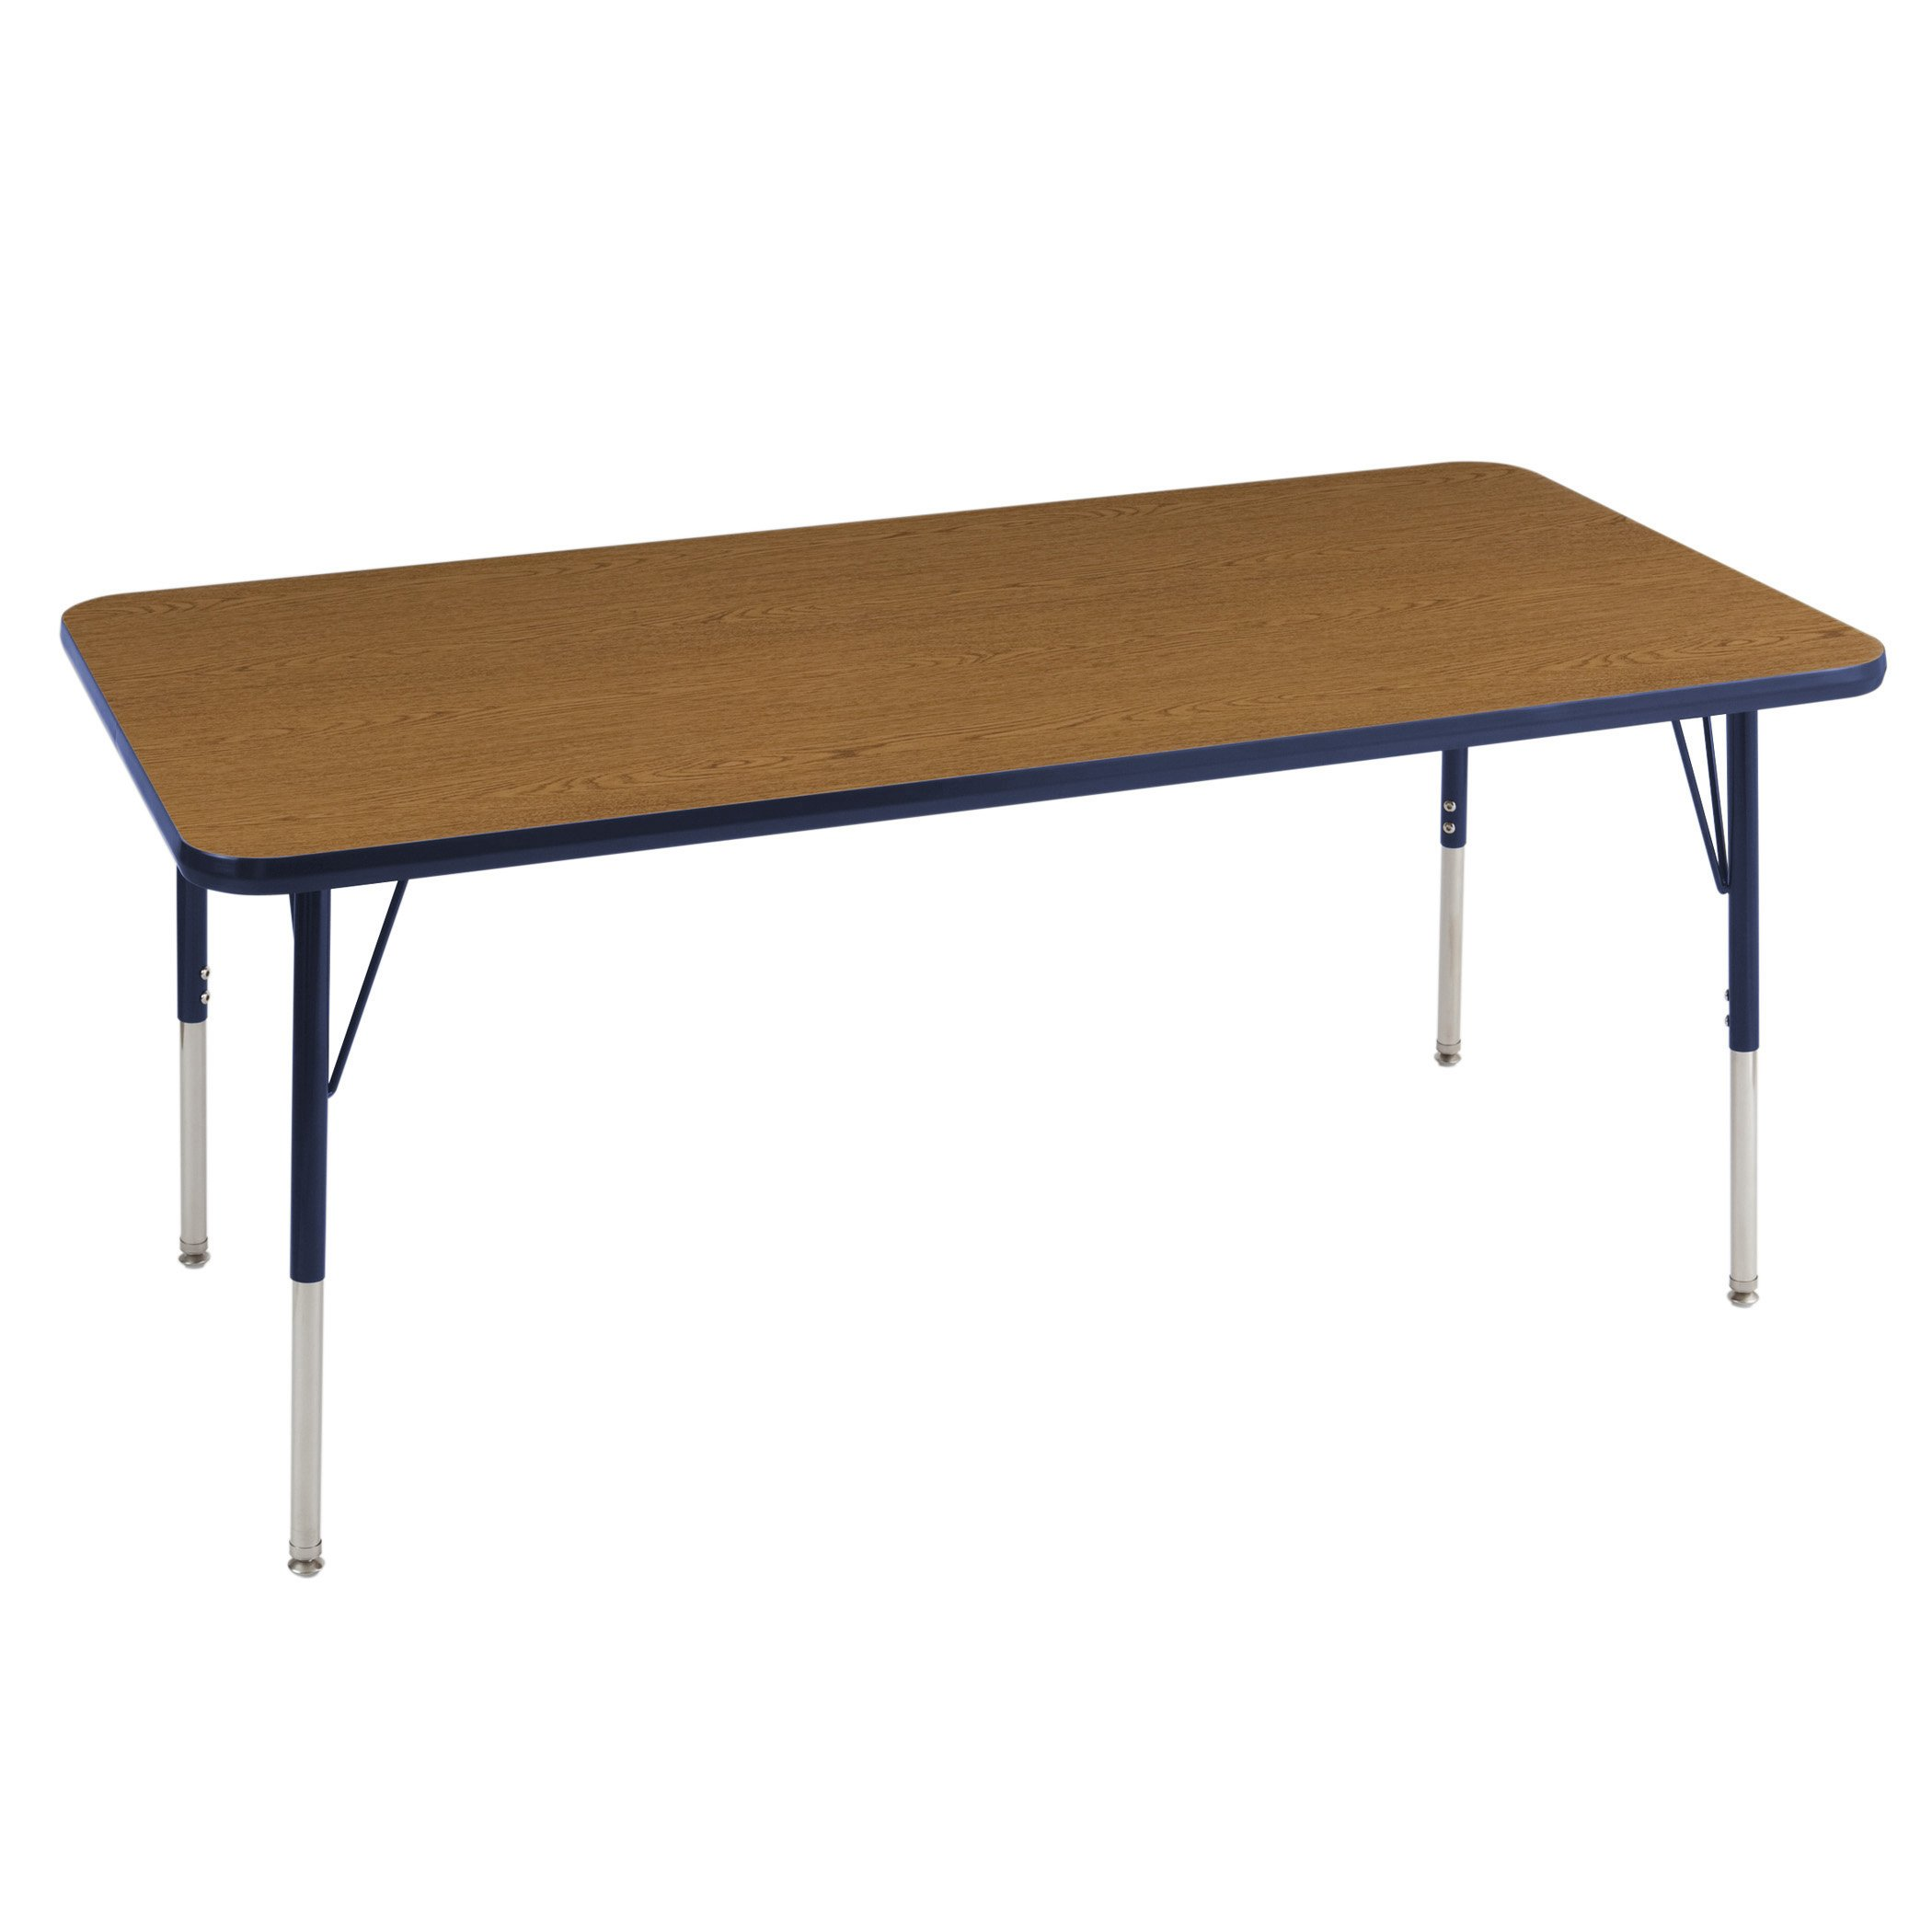 ECR4Kids Mesa Thermo-fused 30'' x 60'' Rectangular School Activity Table, Standard Legs w/ Swivel Glides, Adjustable Height 19-30 inch (Oak/Navy) by ECR4Kids